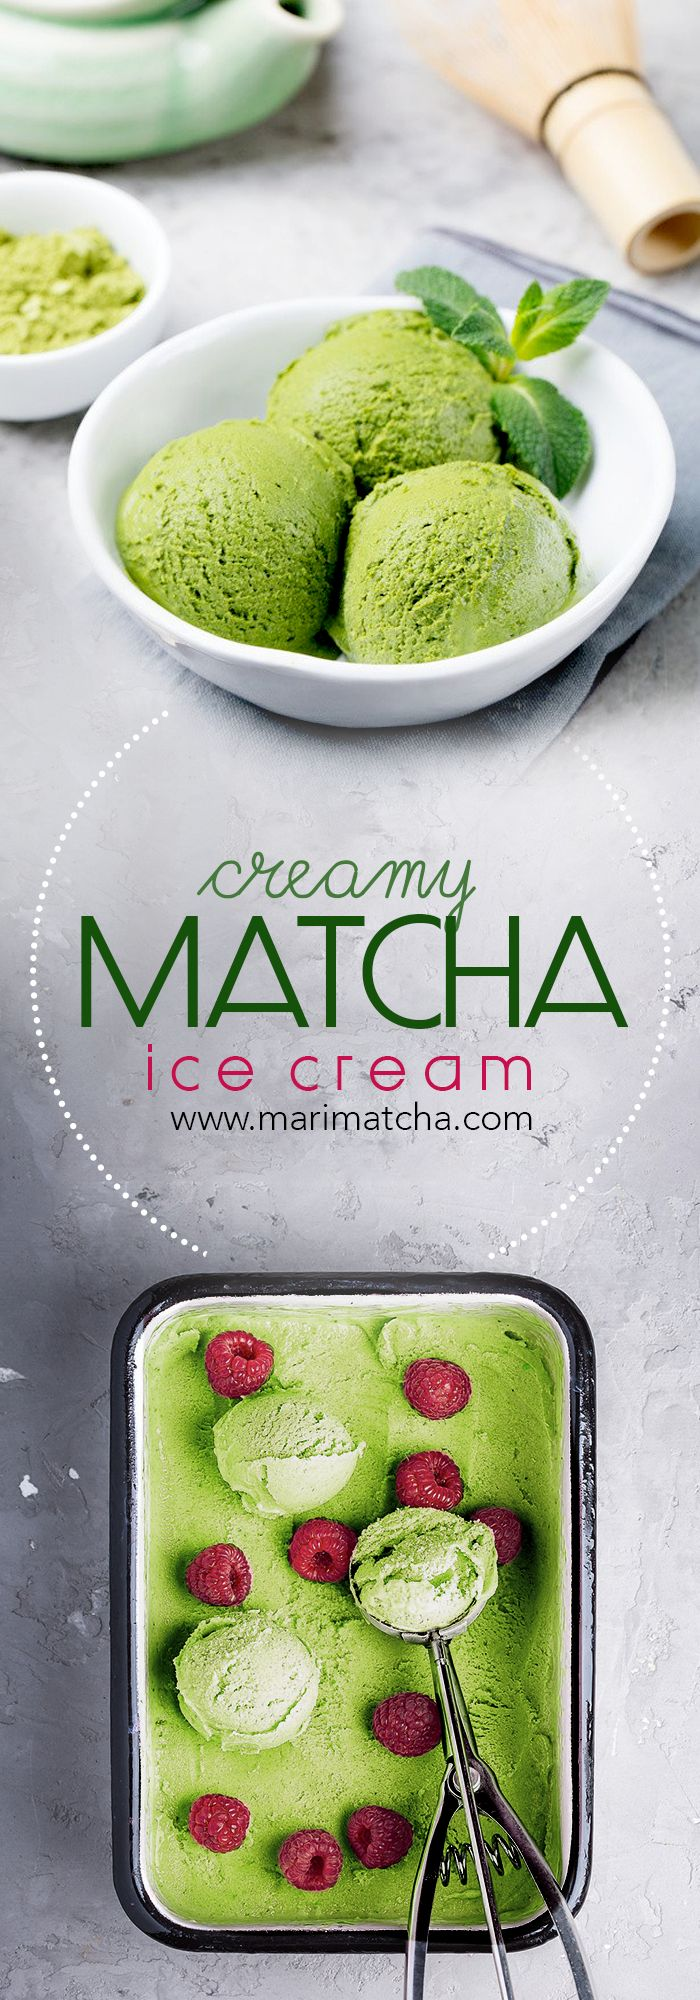 Desserts - Matcha Ice Cream